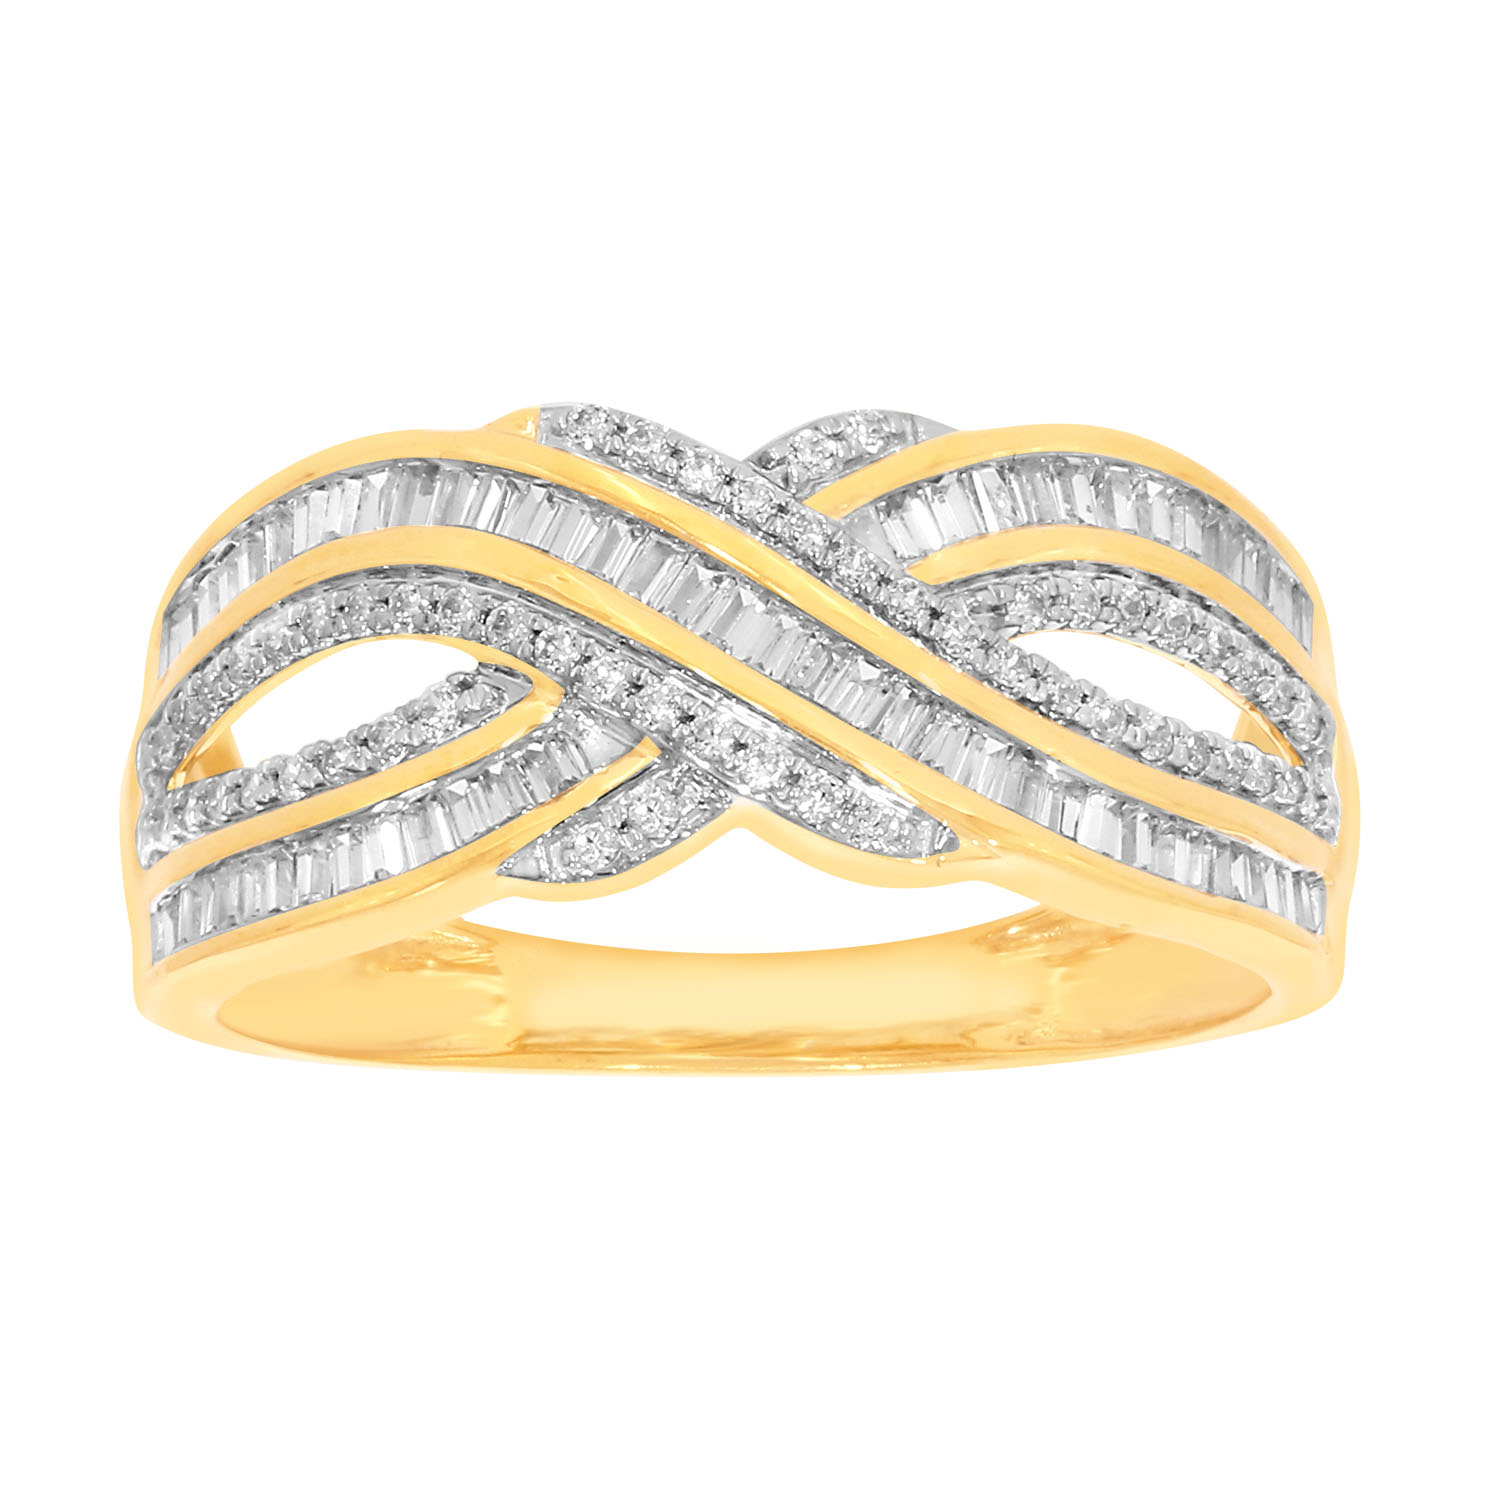 9ct Yellow Gold 1/2 Carat Diamond Ring